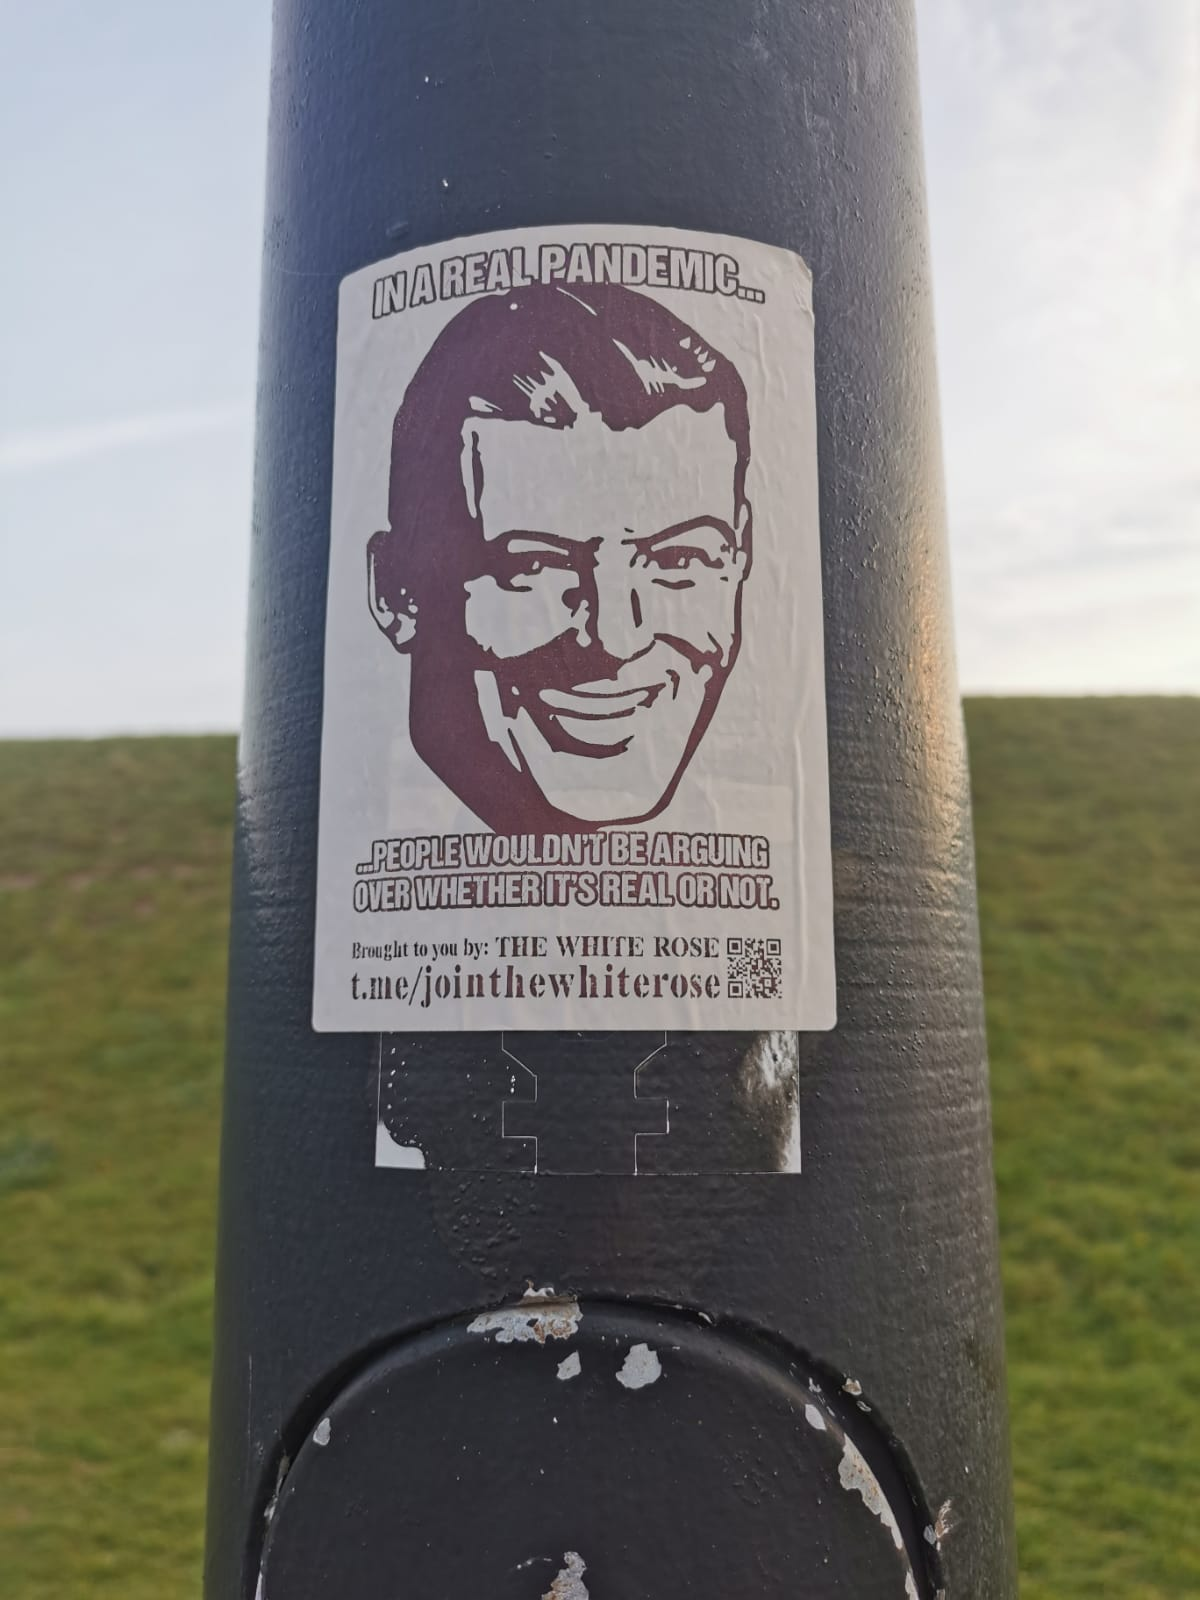 """Sticker on a lamppost: line drawing of a smiling man """"In a real pandemic…people wouldn't be arguing over whether it's real or not"""" – white text with a black outline on a white background."""